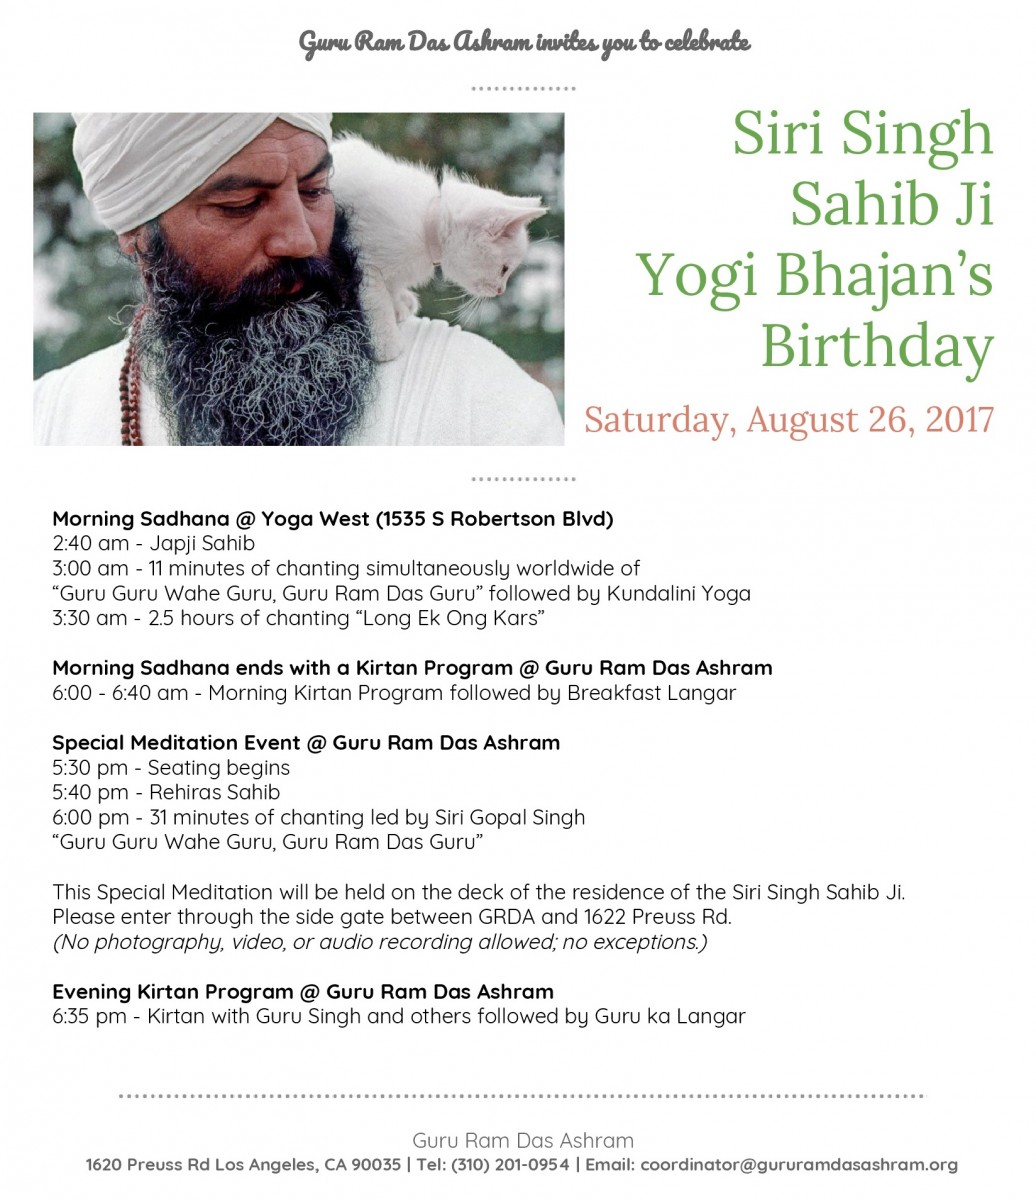 Yogi Bhajan's Birthday Celebration